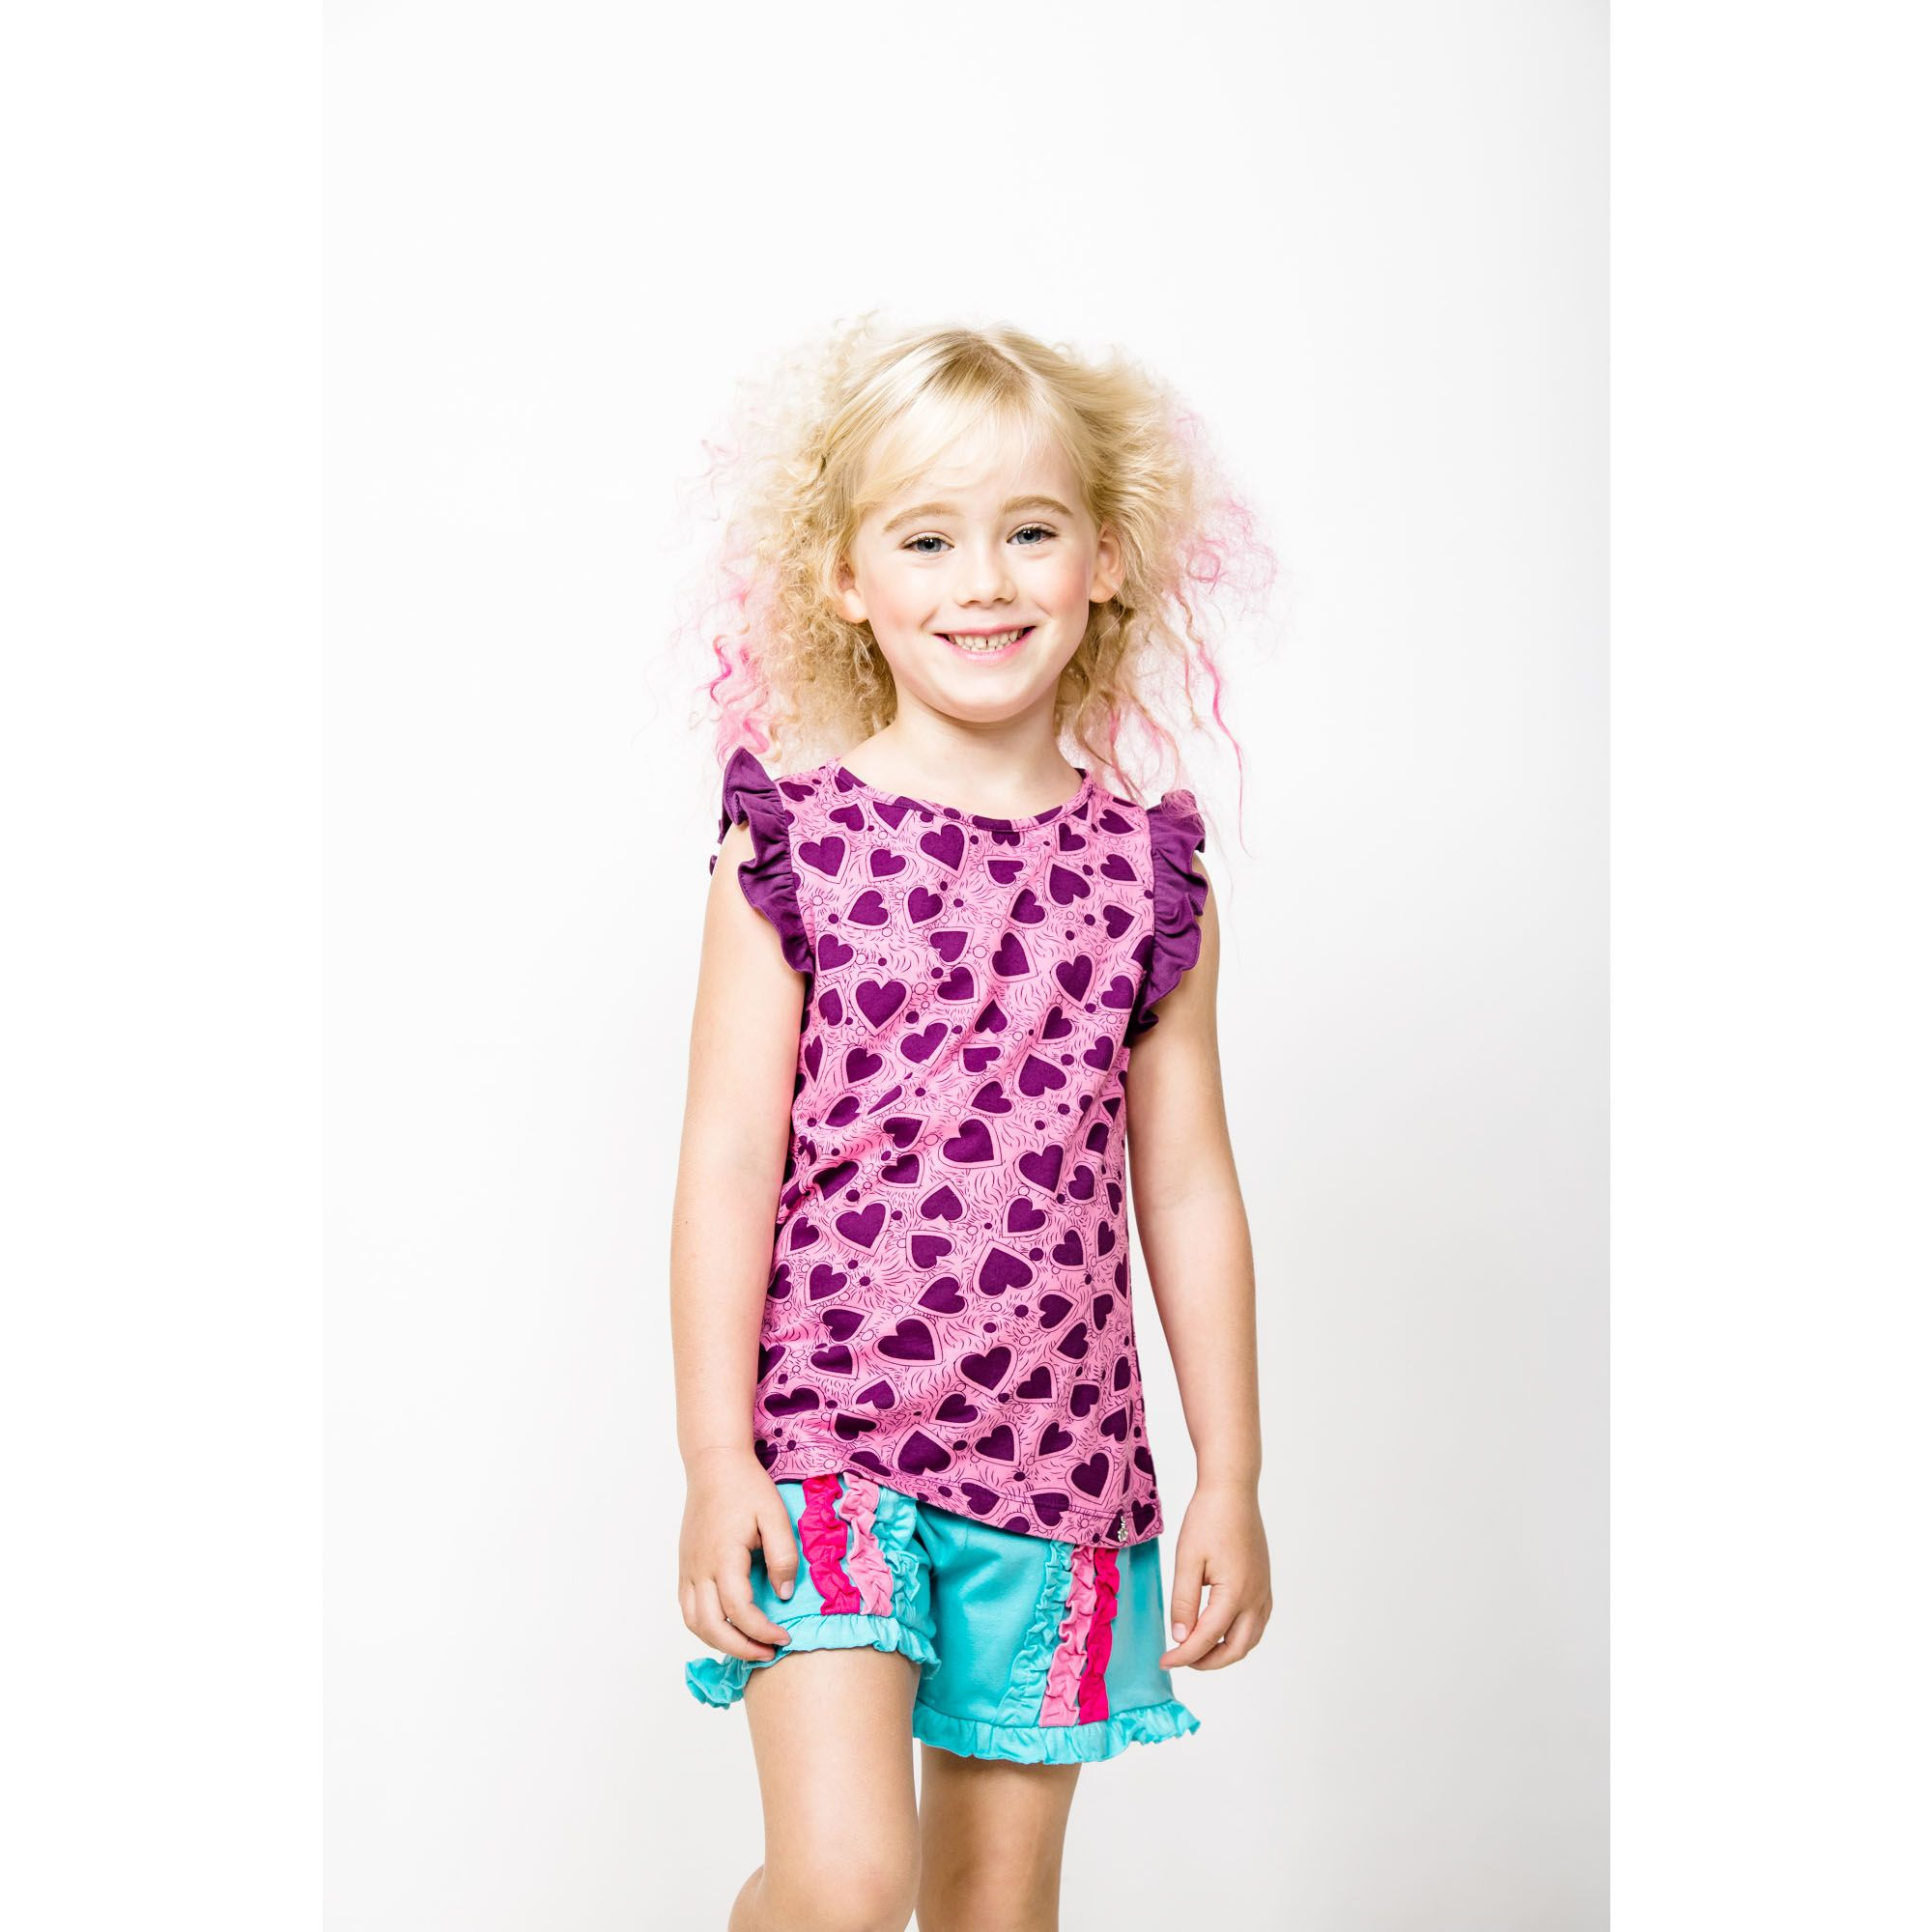 Super pinky round neck top with fancy heart print! What more can a girl ask for? This sleeveless frill top made from soft luxurious cotton jersey and is easy to match with shorts or skirt, ideal for everyday look